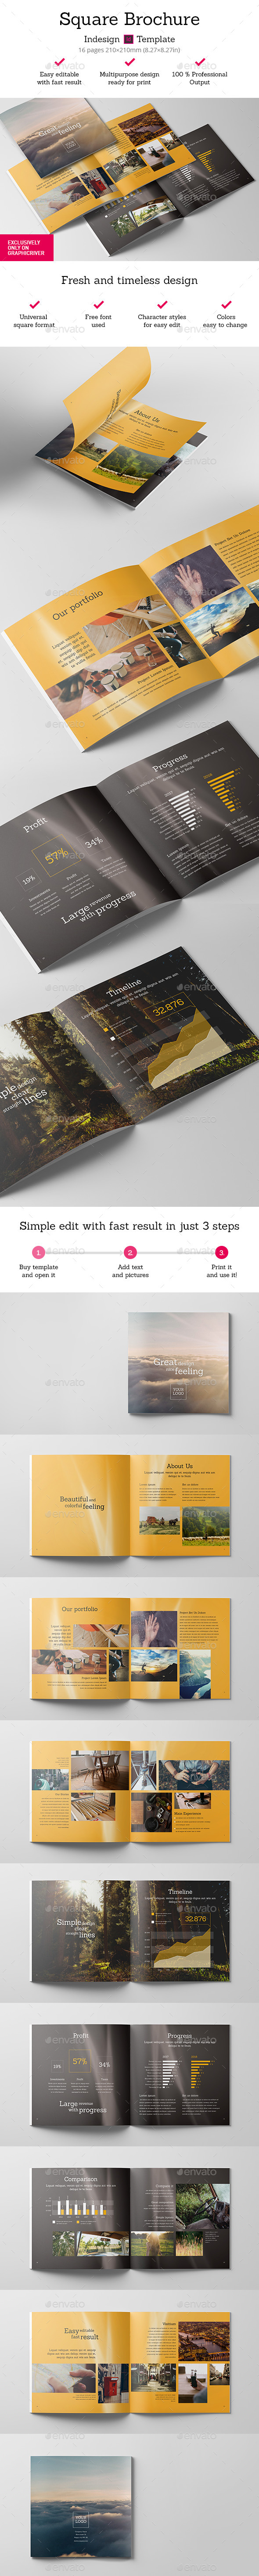 GraphicRiver Square Brochure Indesign Template 11918753